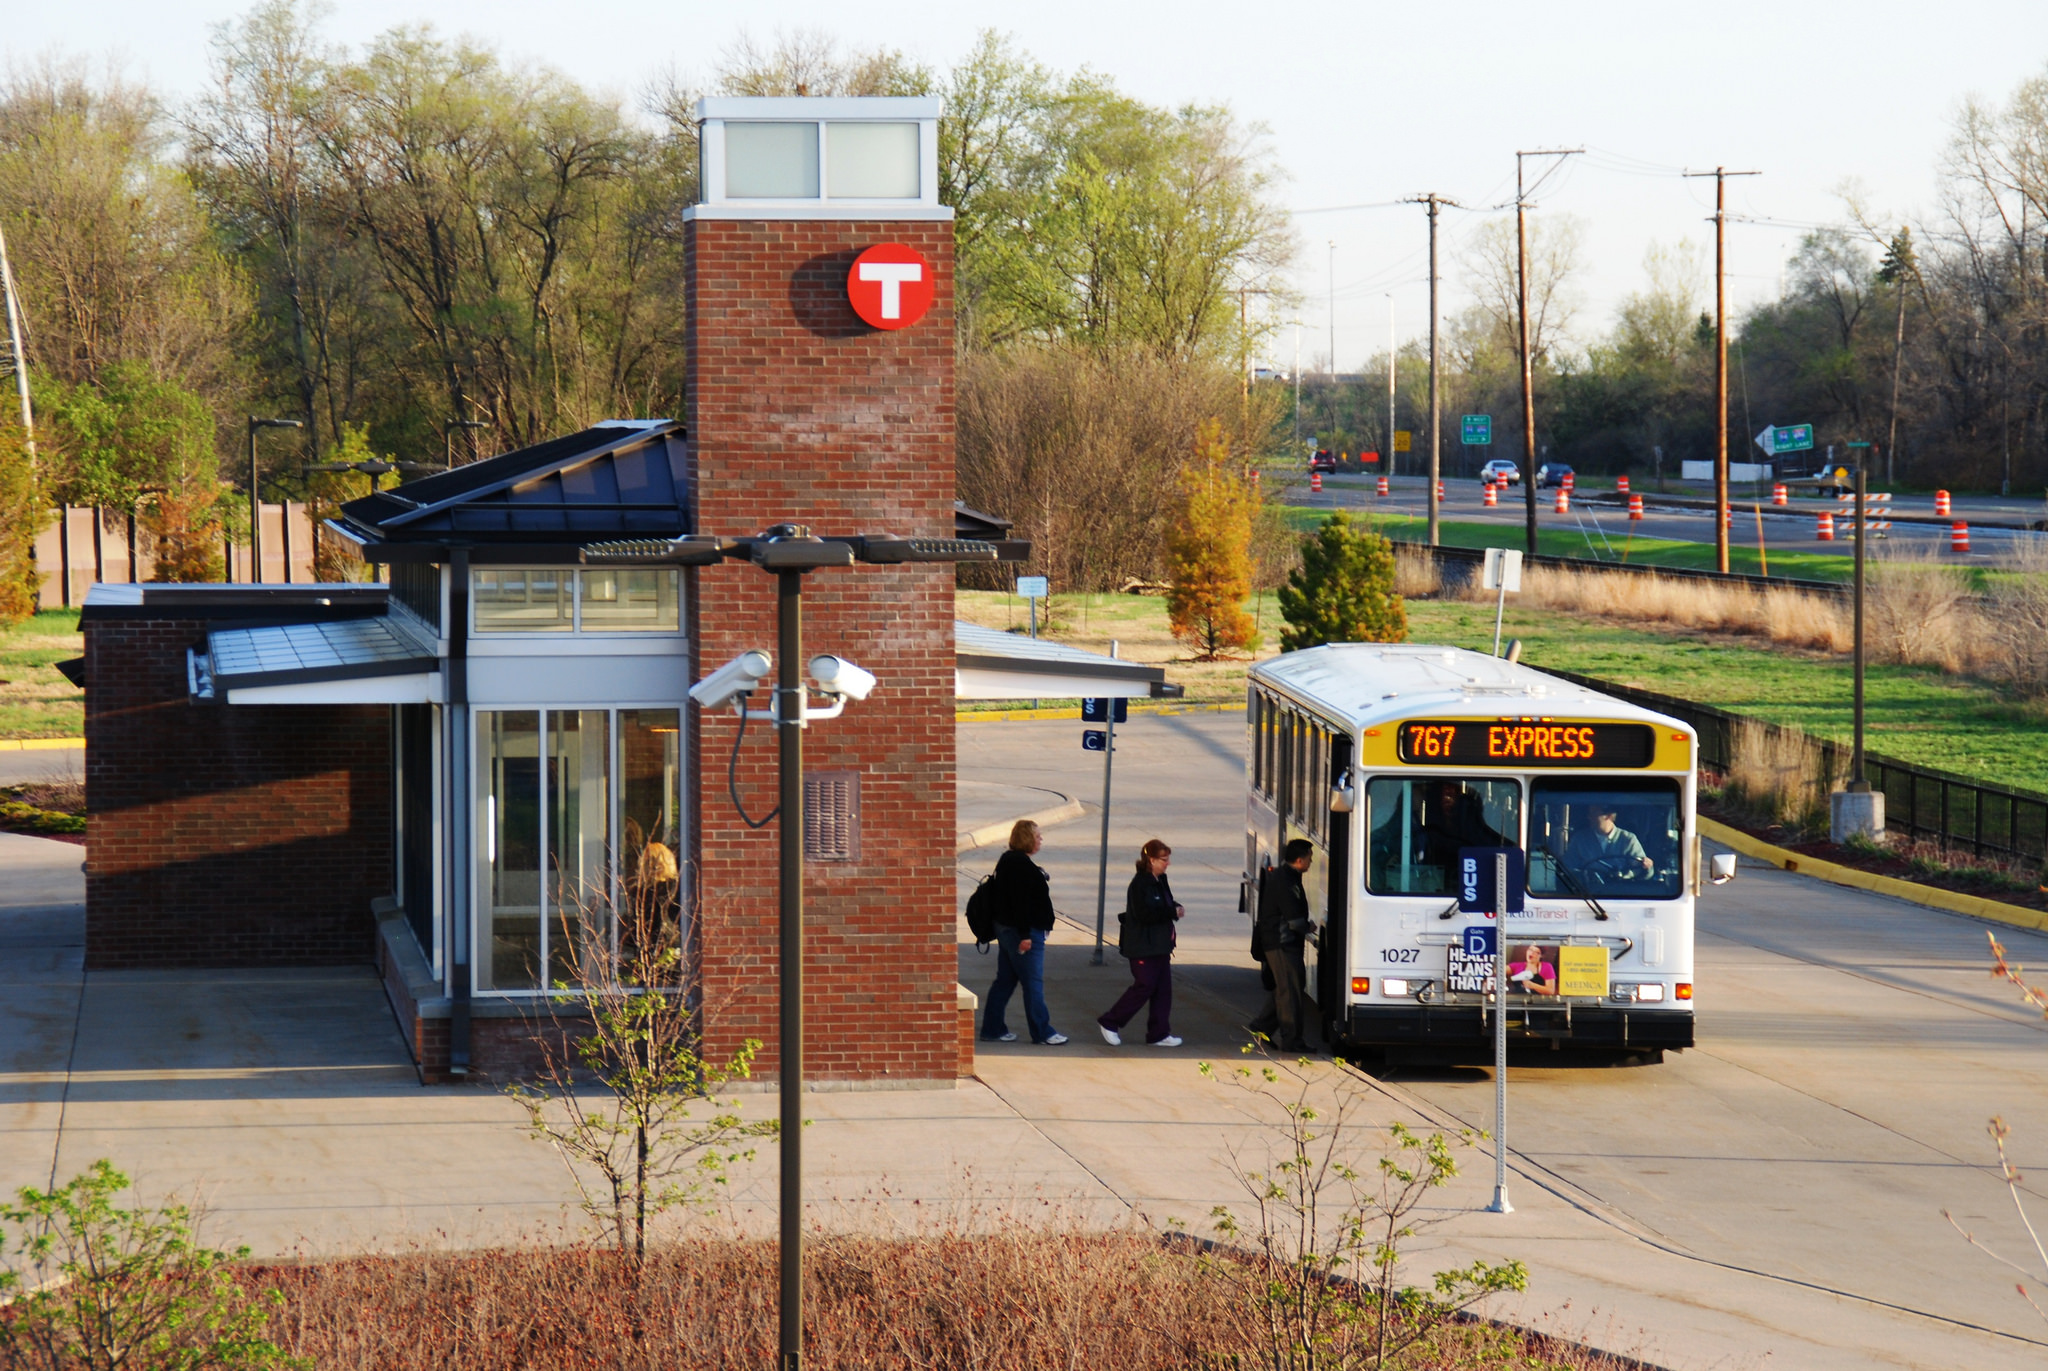 Customers board Route 767 at the Bottineau Blvd & 63rd Avenue Park & Ride.